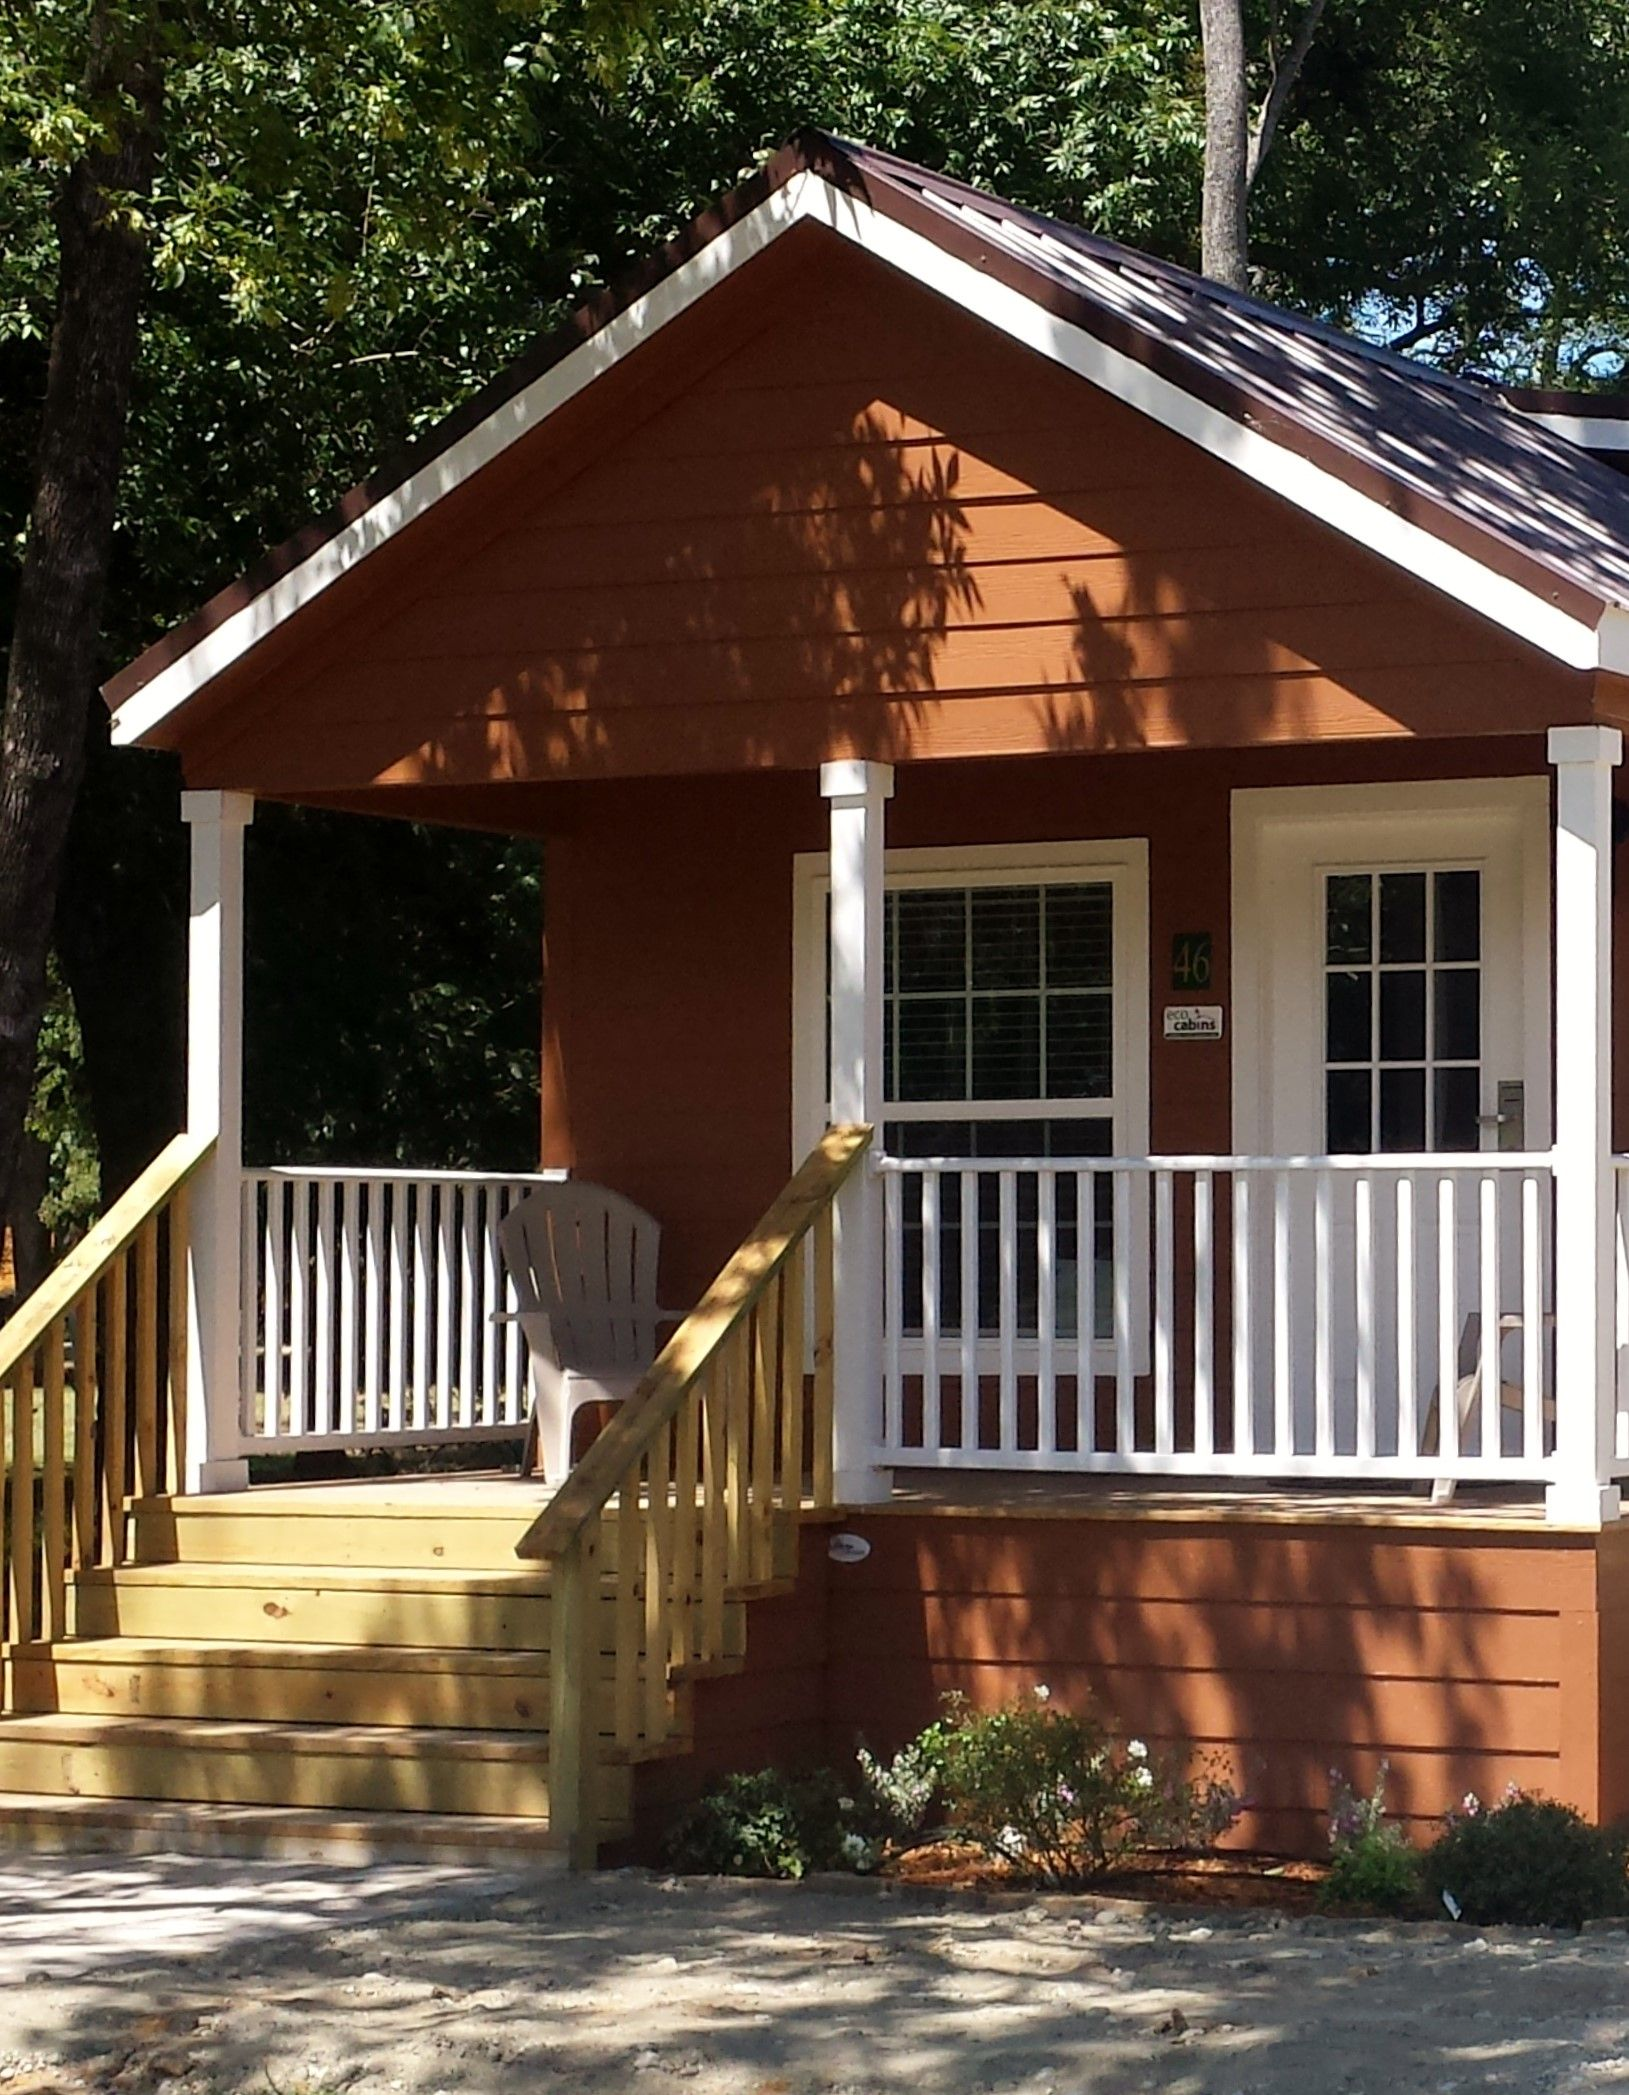 Ordinaire Canton Tx · Mill Creek Ranch Resort Has A New Partnership For On Site Cabins  For Sale In